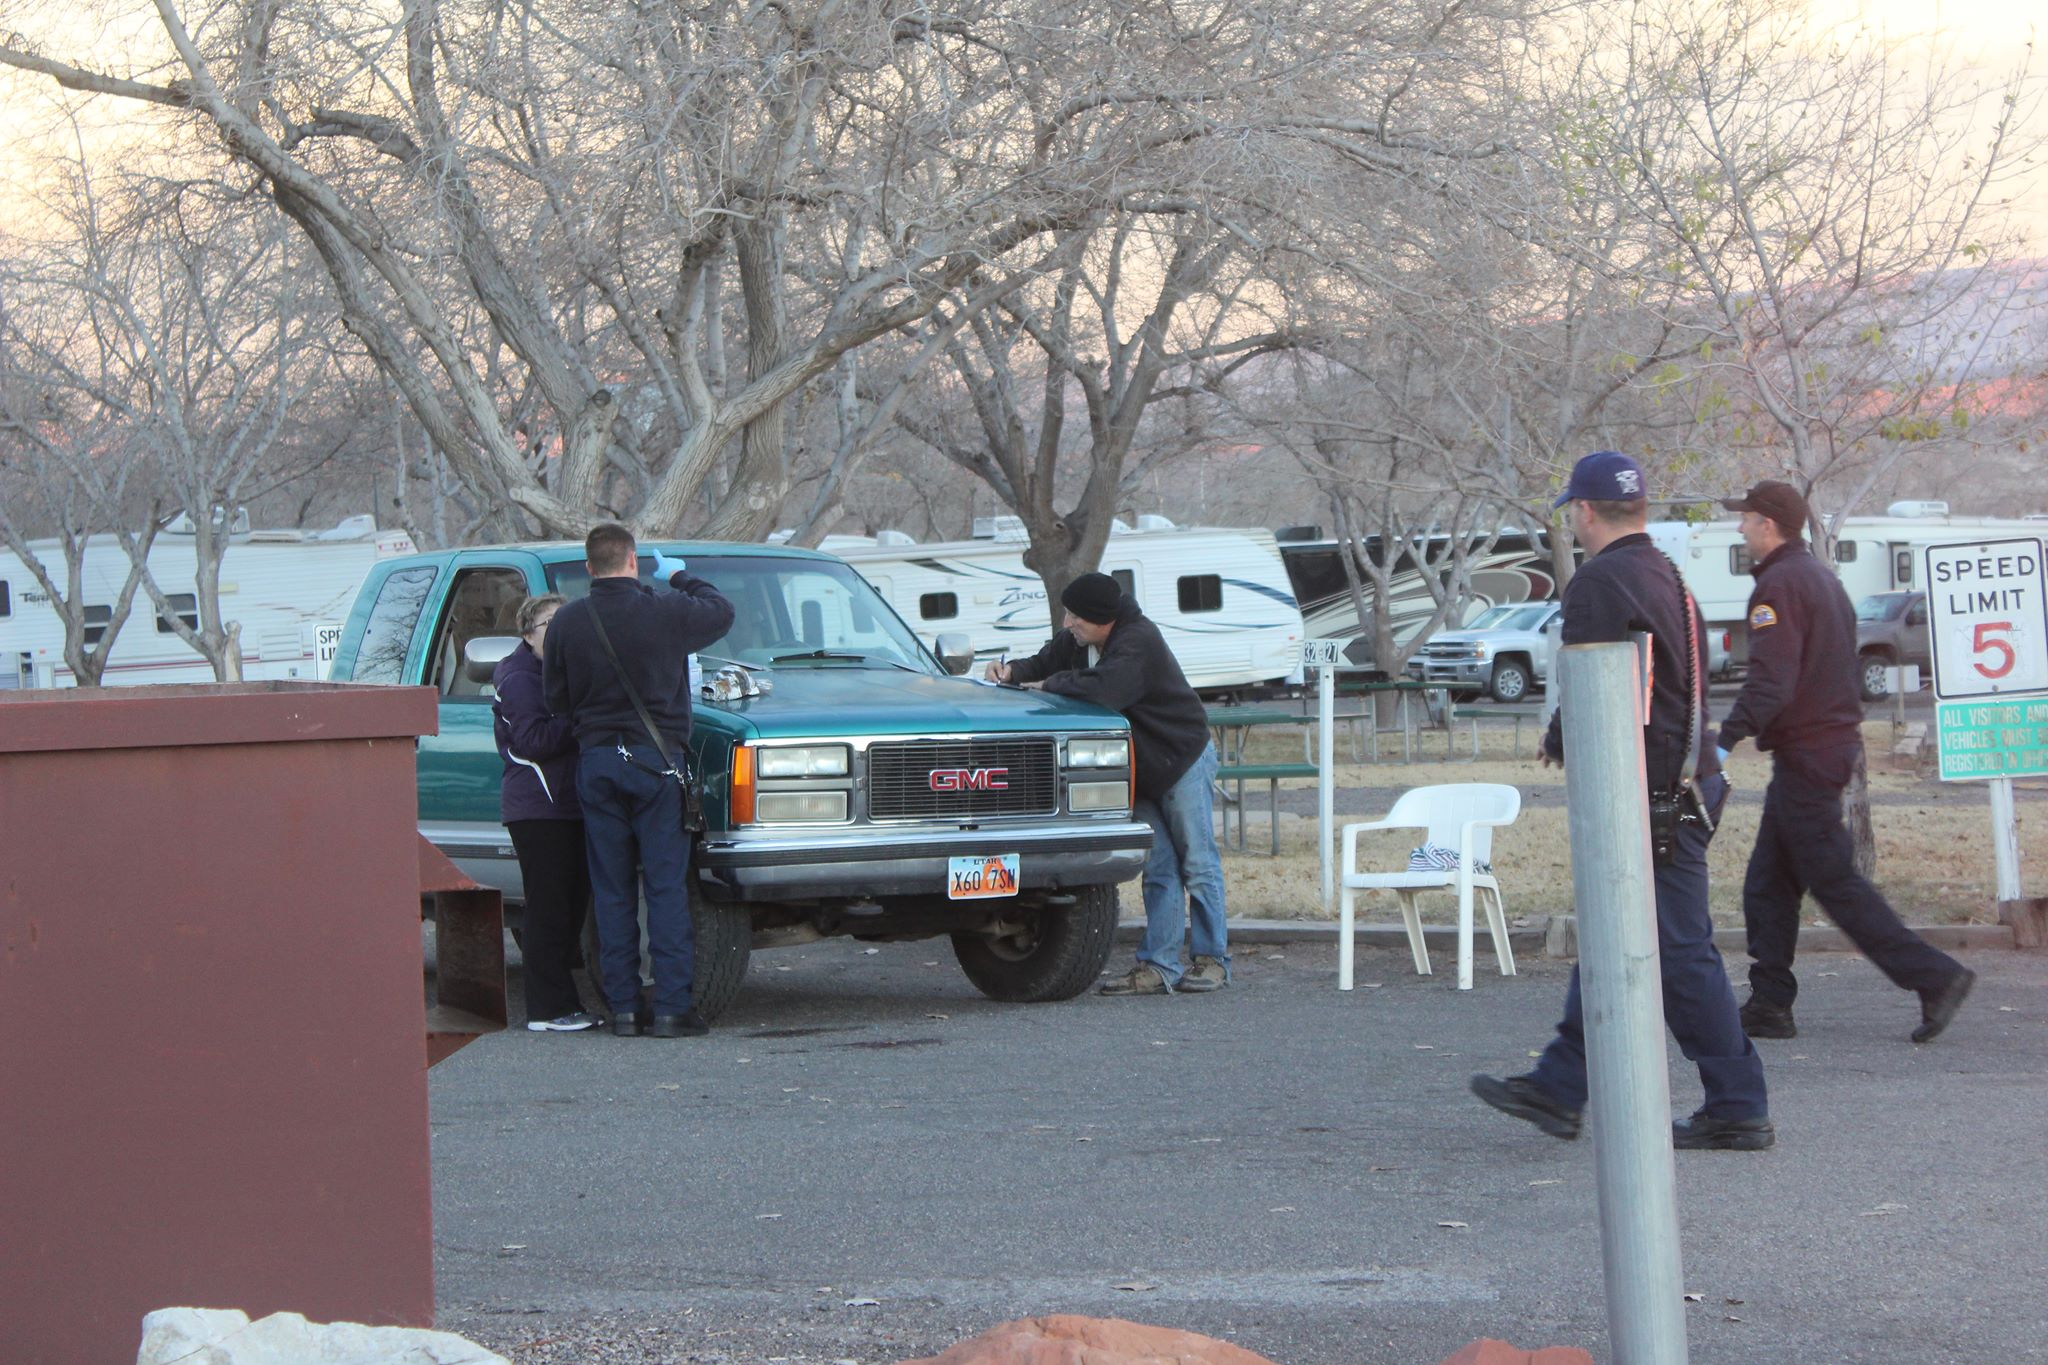 A truck hit a  pedestrian in the St. George RV Park Campground when, police said, he was temporarily blinded by the sun. St. George, Utah, Dec. 13, 2015   Photo by Don Gilman, St. George News